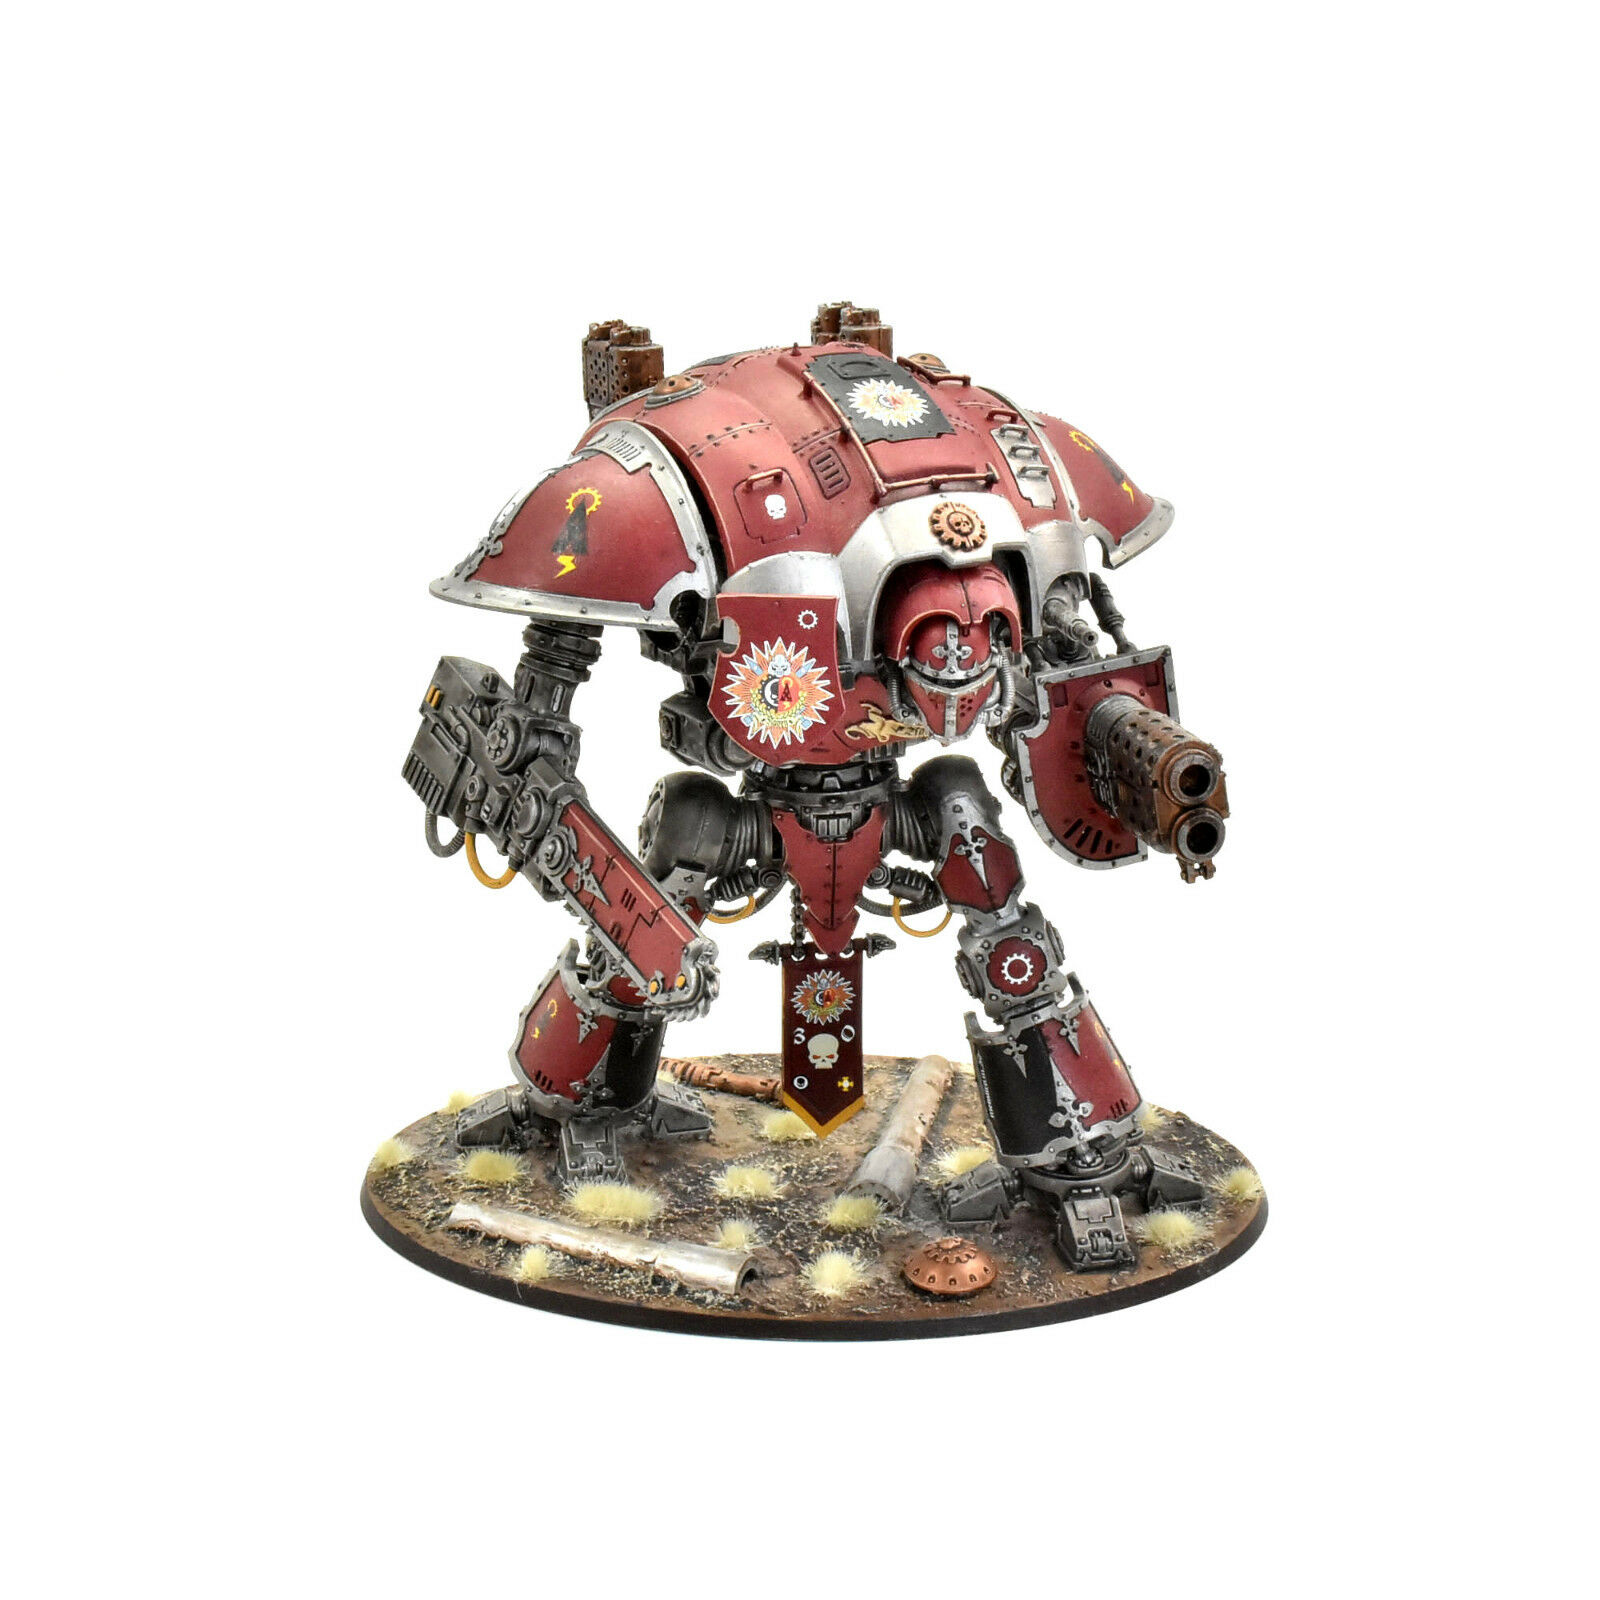 IMPERIAL KNIGHTS Knight Errant  2 WELL PAINTED  Warhammer 40K adeptus mechanicus  meilleure vente